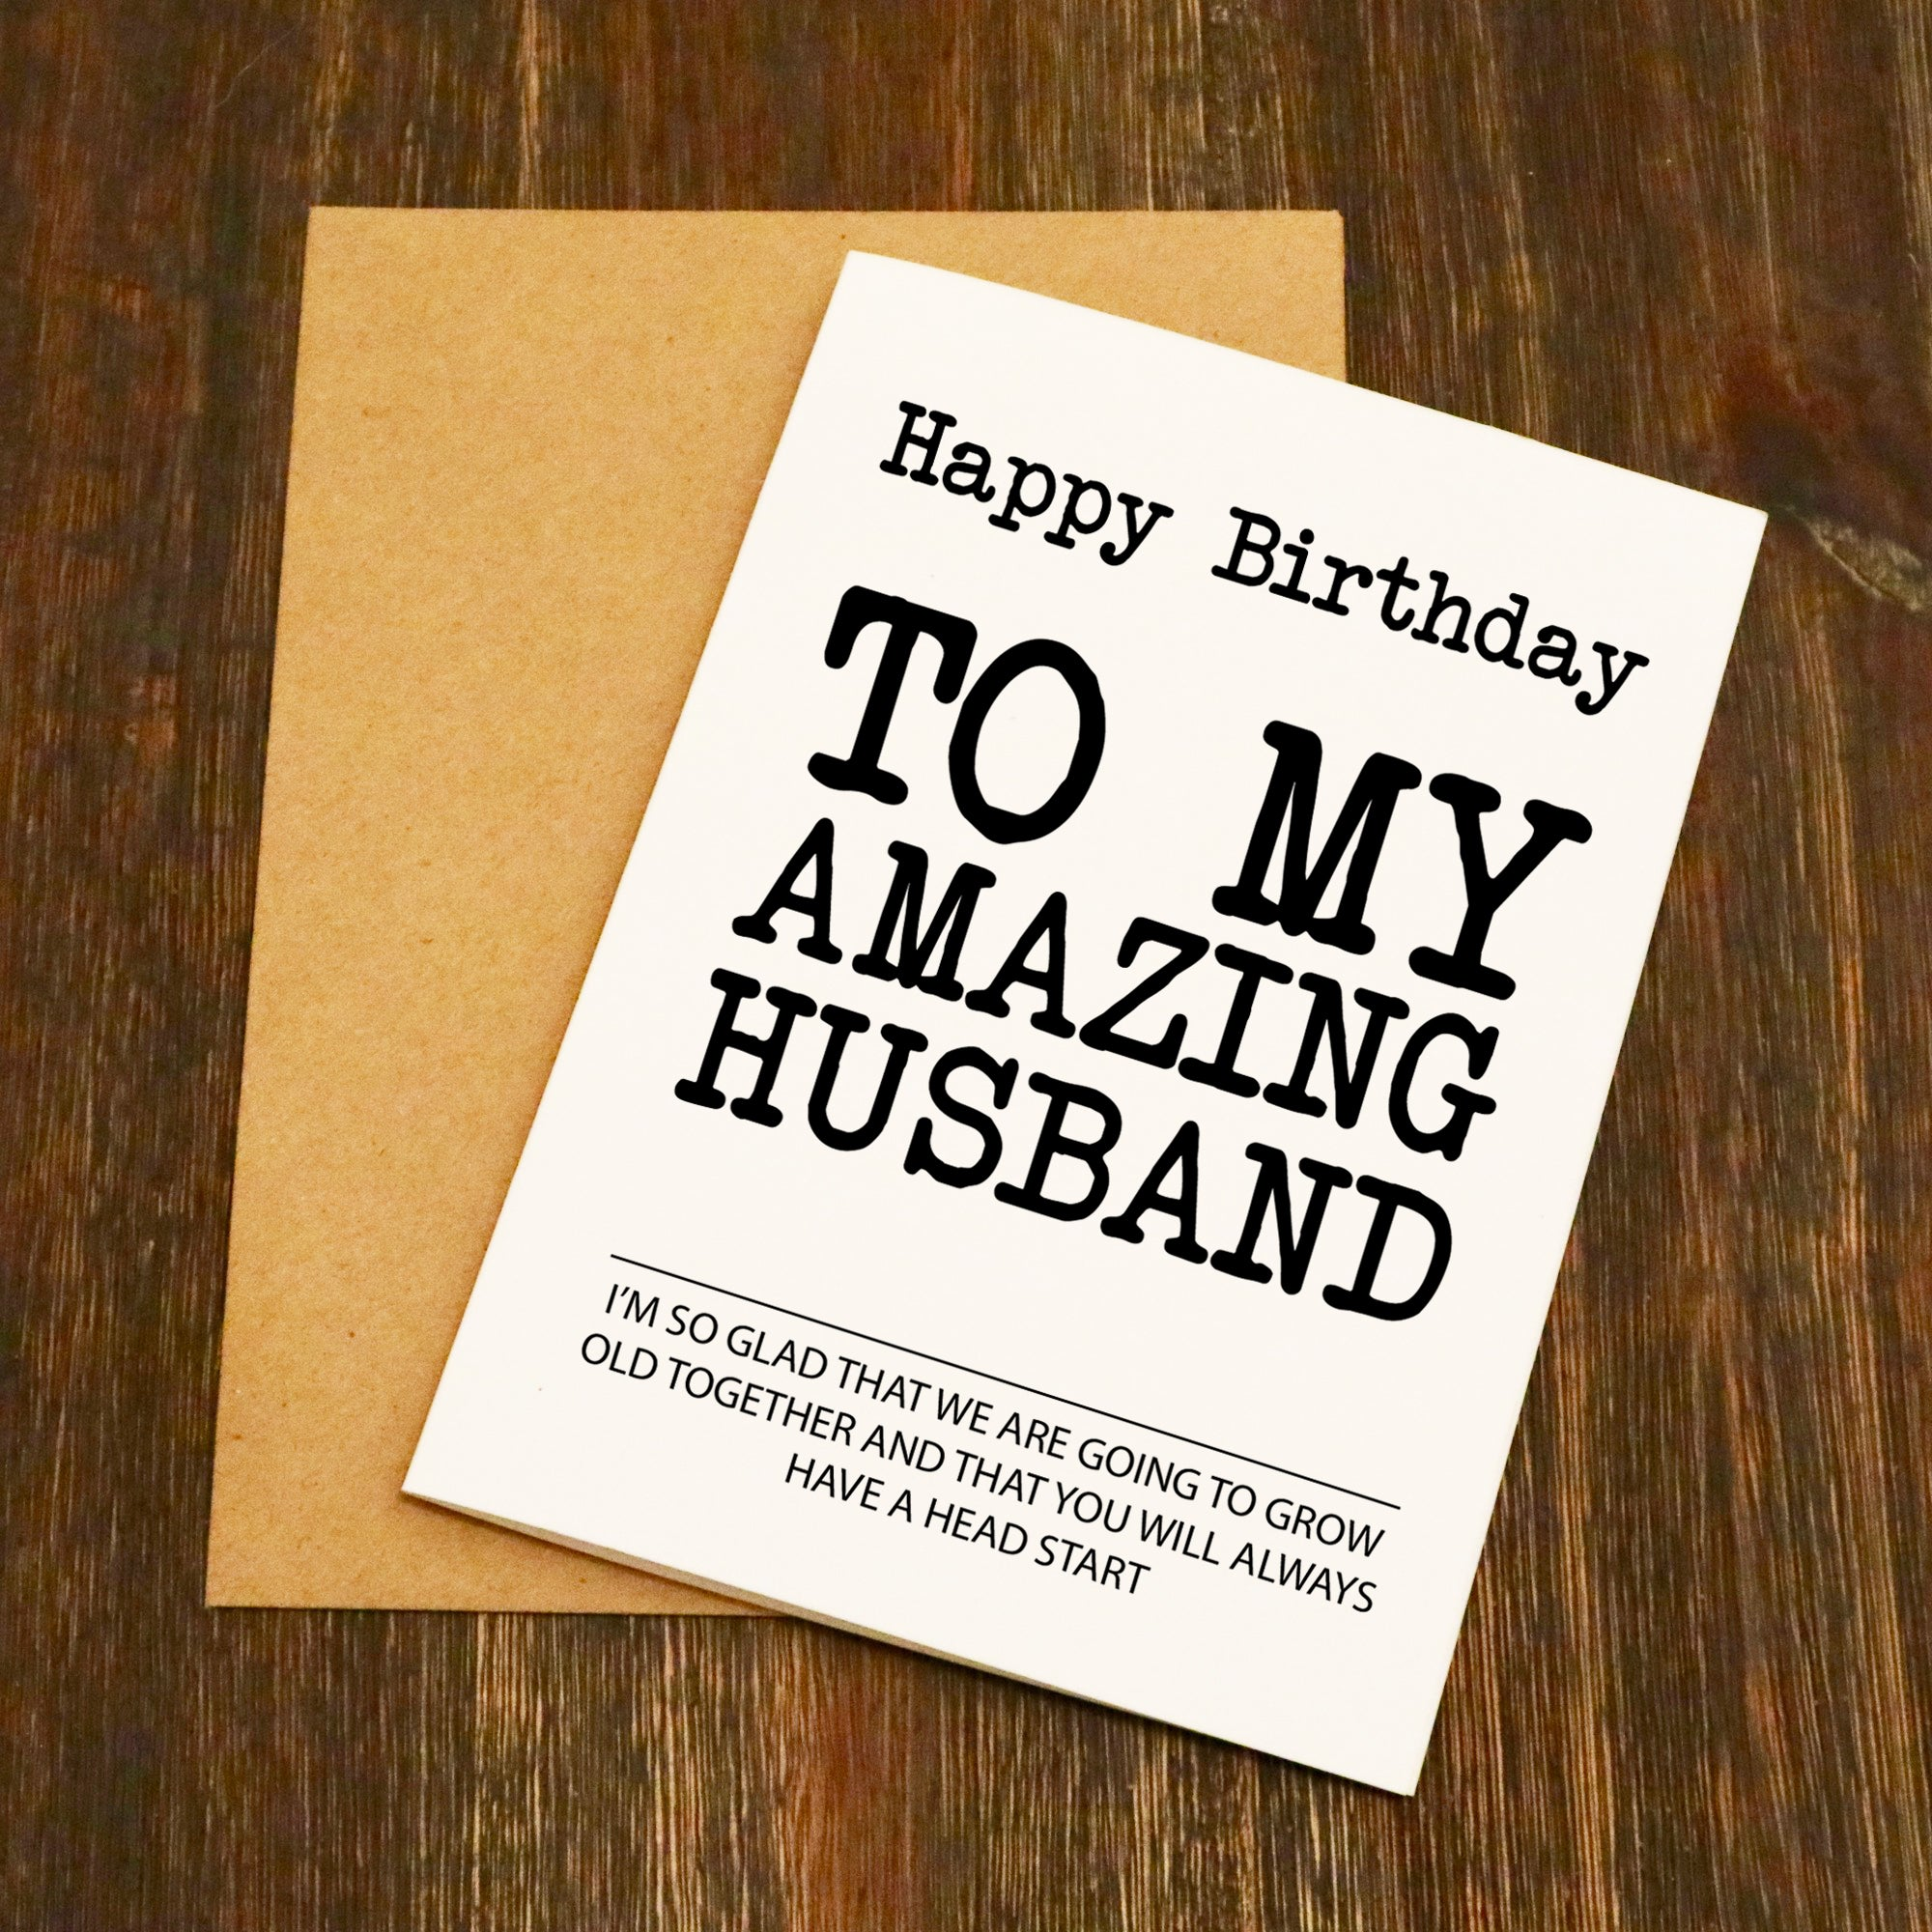 Birthday Cards For Husband Amazon Co Uk: EllieBeanPrints